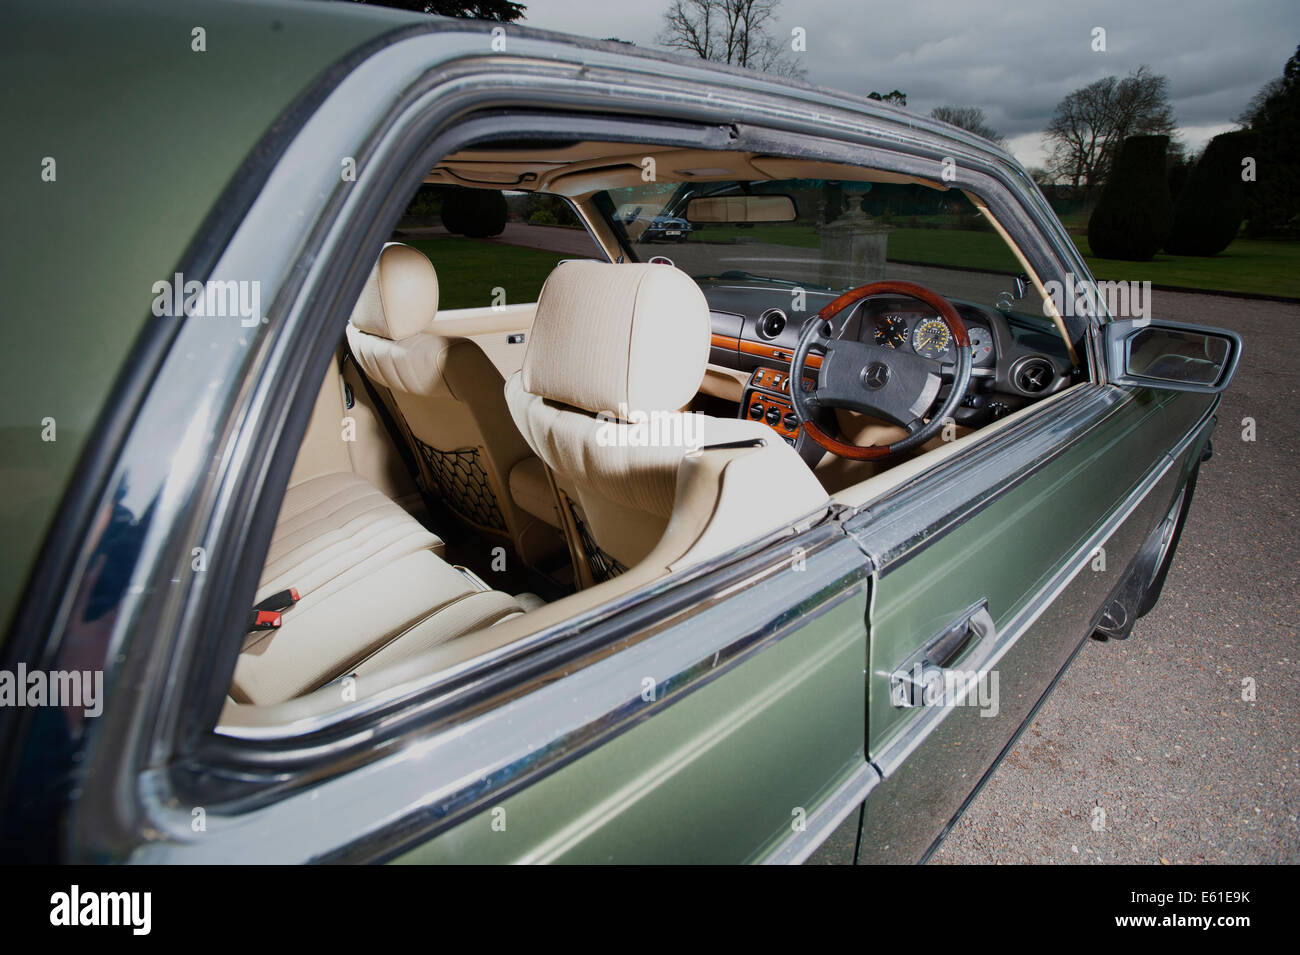 1980 mercedes 280ce e class coupe luxury german car interior through stock photo royalty free. Black Bedroom Furniture Sets. Home Design Ideas